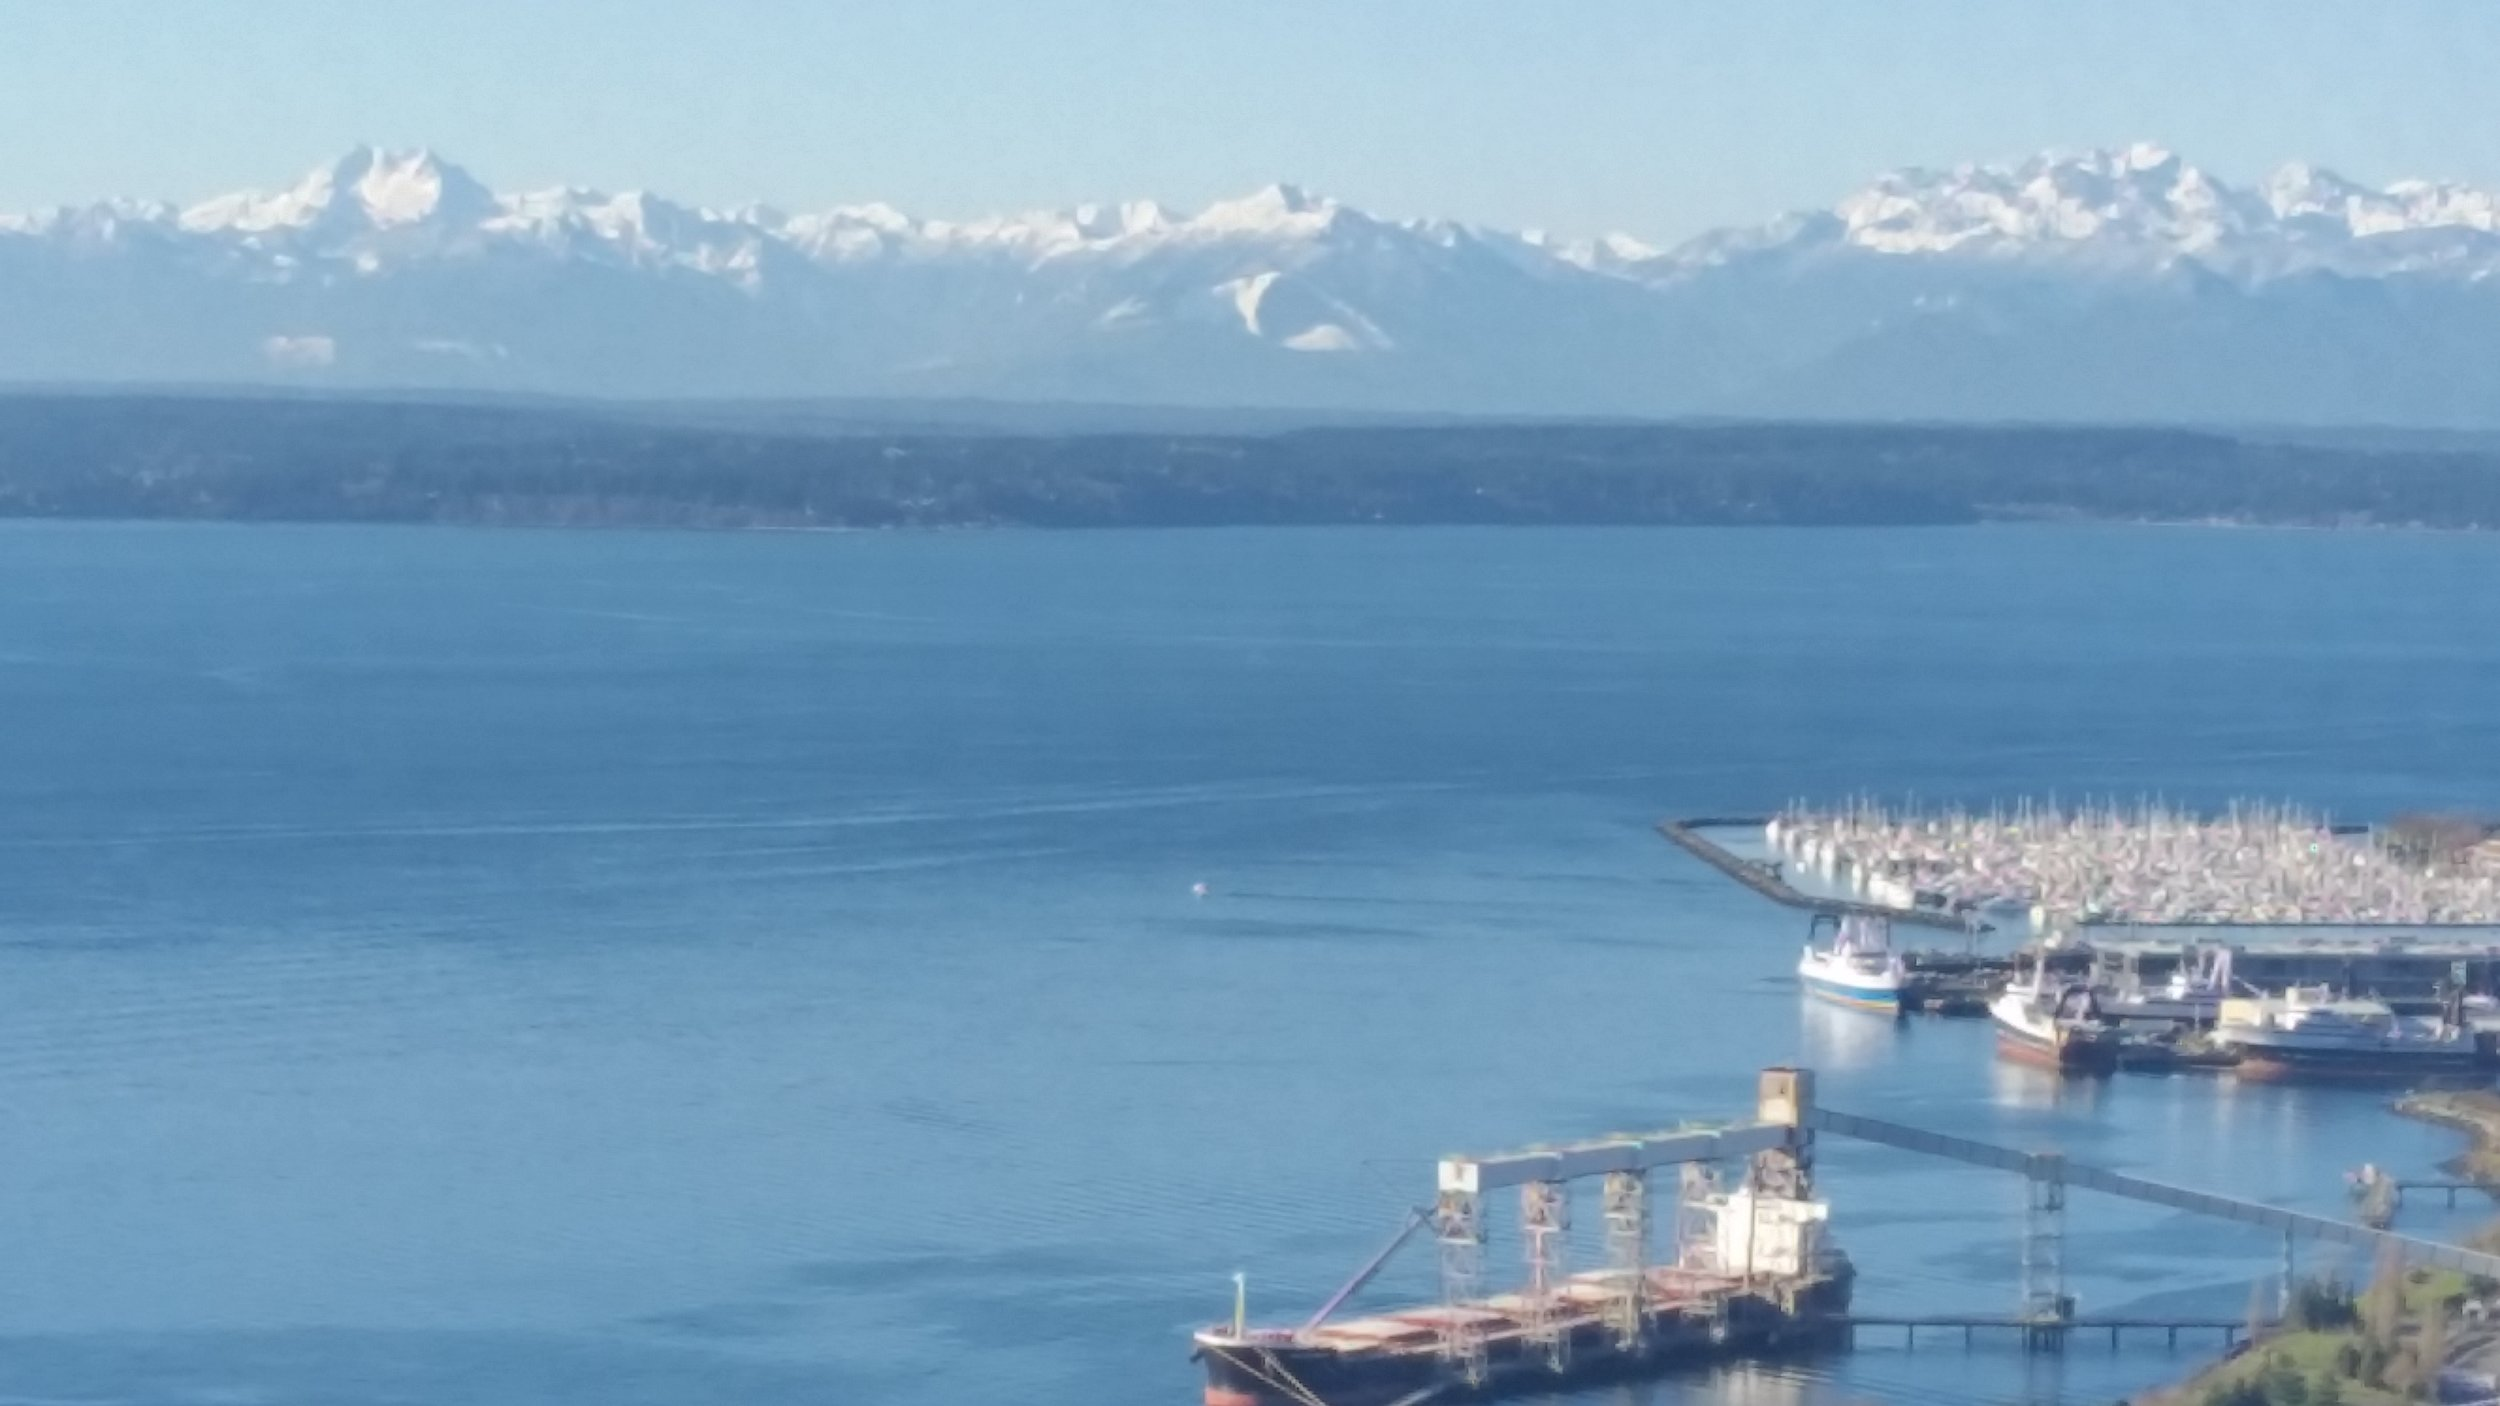 Olympic Mountains and Elliot Bay Marina from the Space Needle